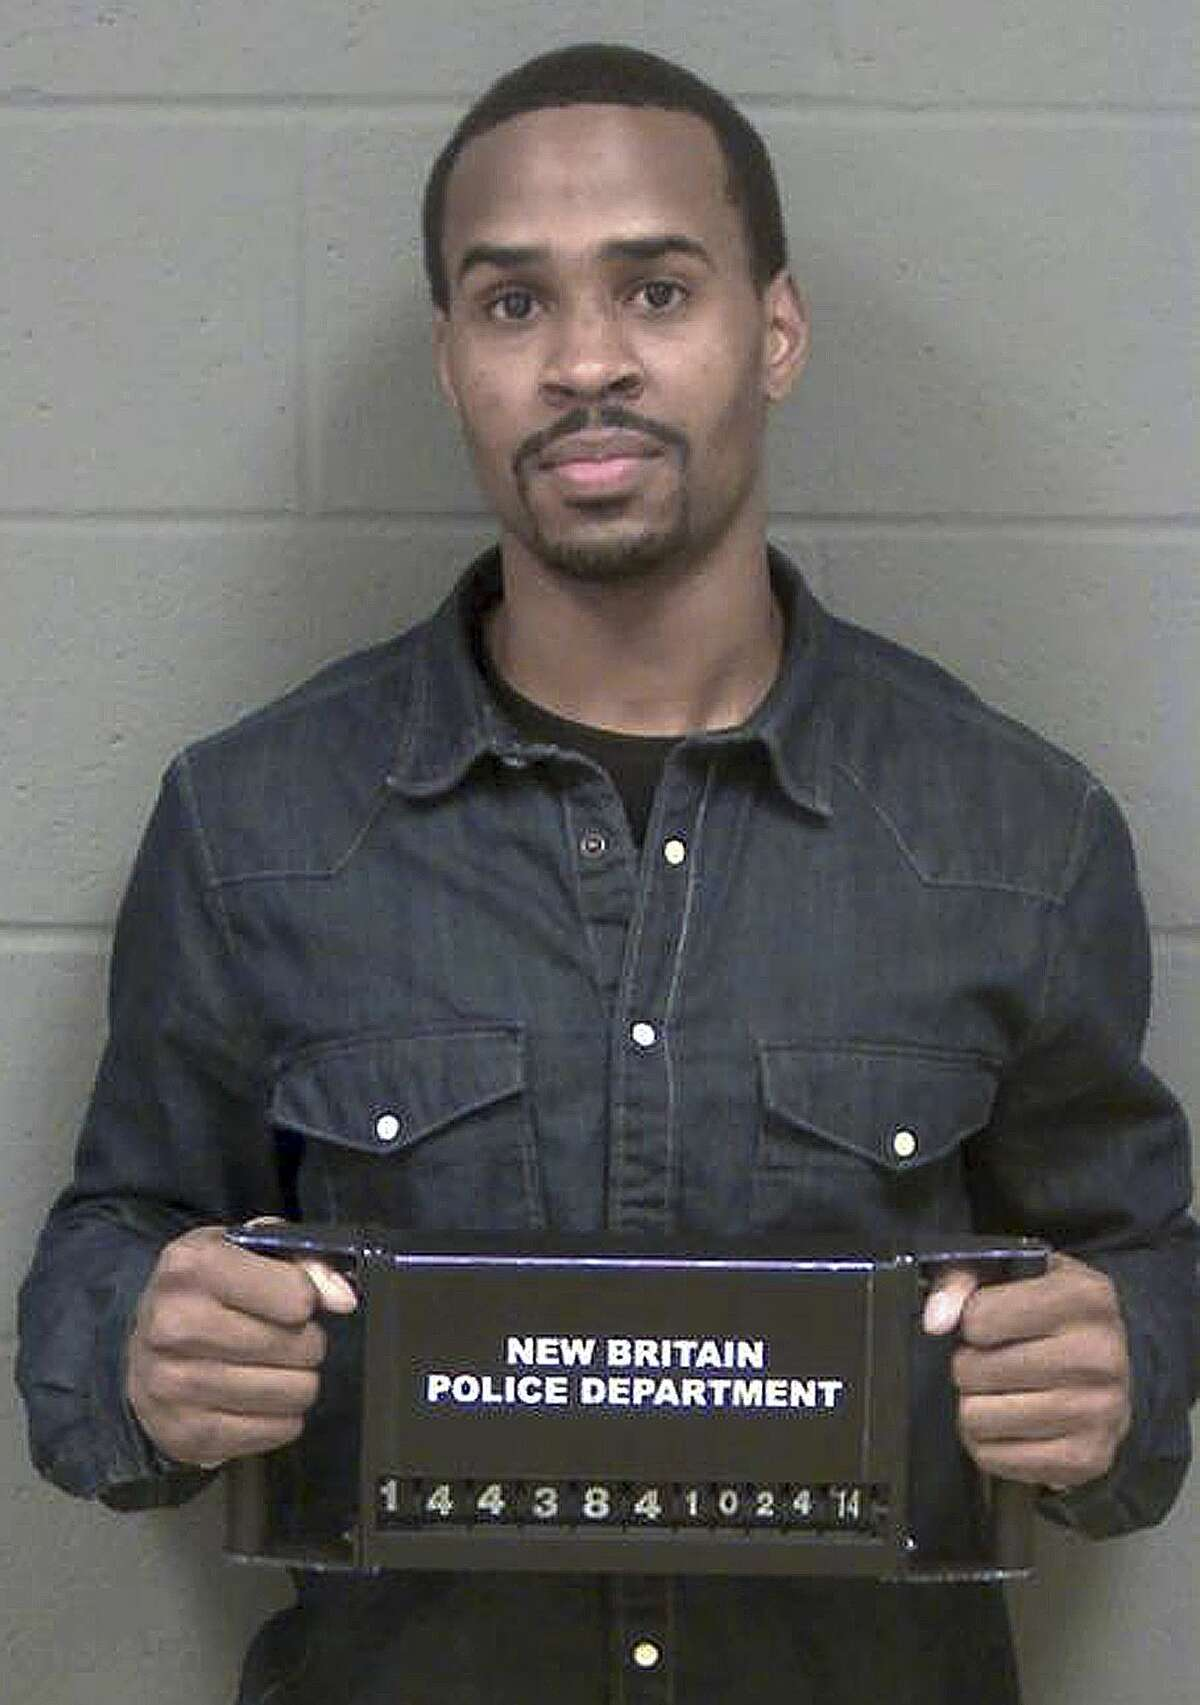 Central Connecticut State basketball player Kyle Vinales poses for his booking photo after being arrested by New Britain Police on Friday when his girlfriend accused him of striking her while the two were fighting. Vinales is charged with third-degree assault and disorderly conduct.